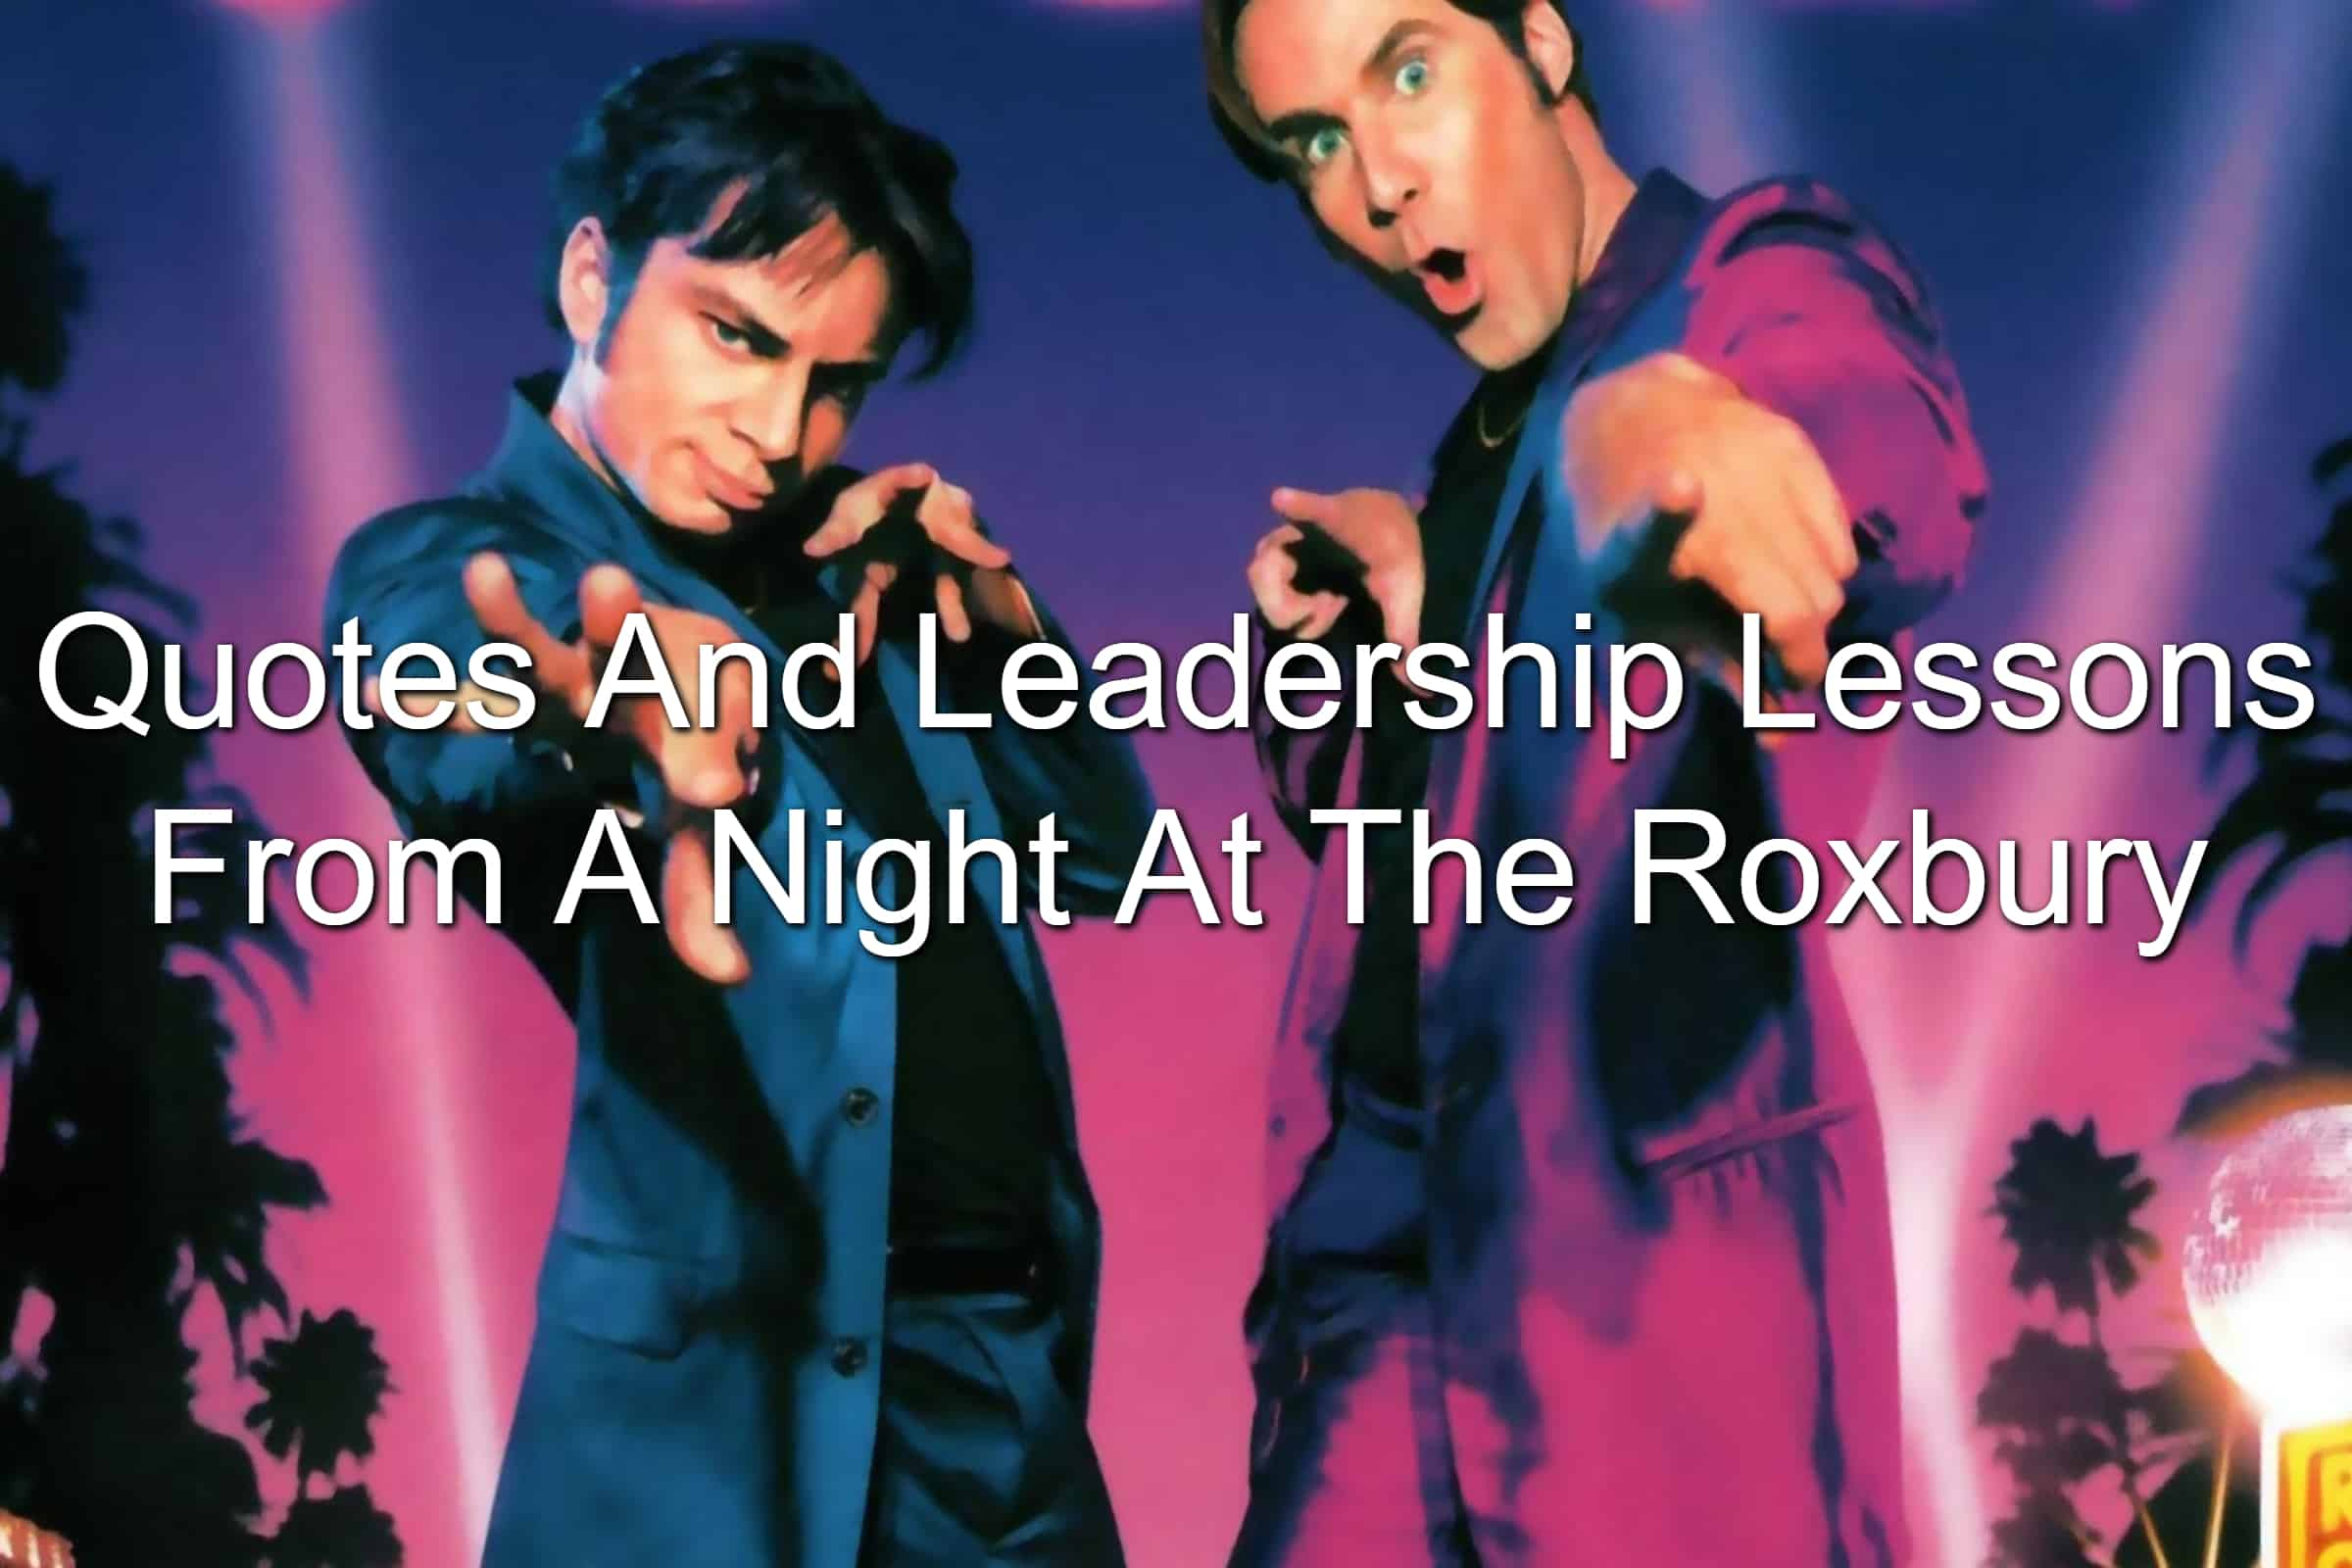 Chris Kattan and Will Ferrell in A Night At The Roxbury